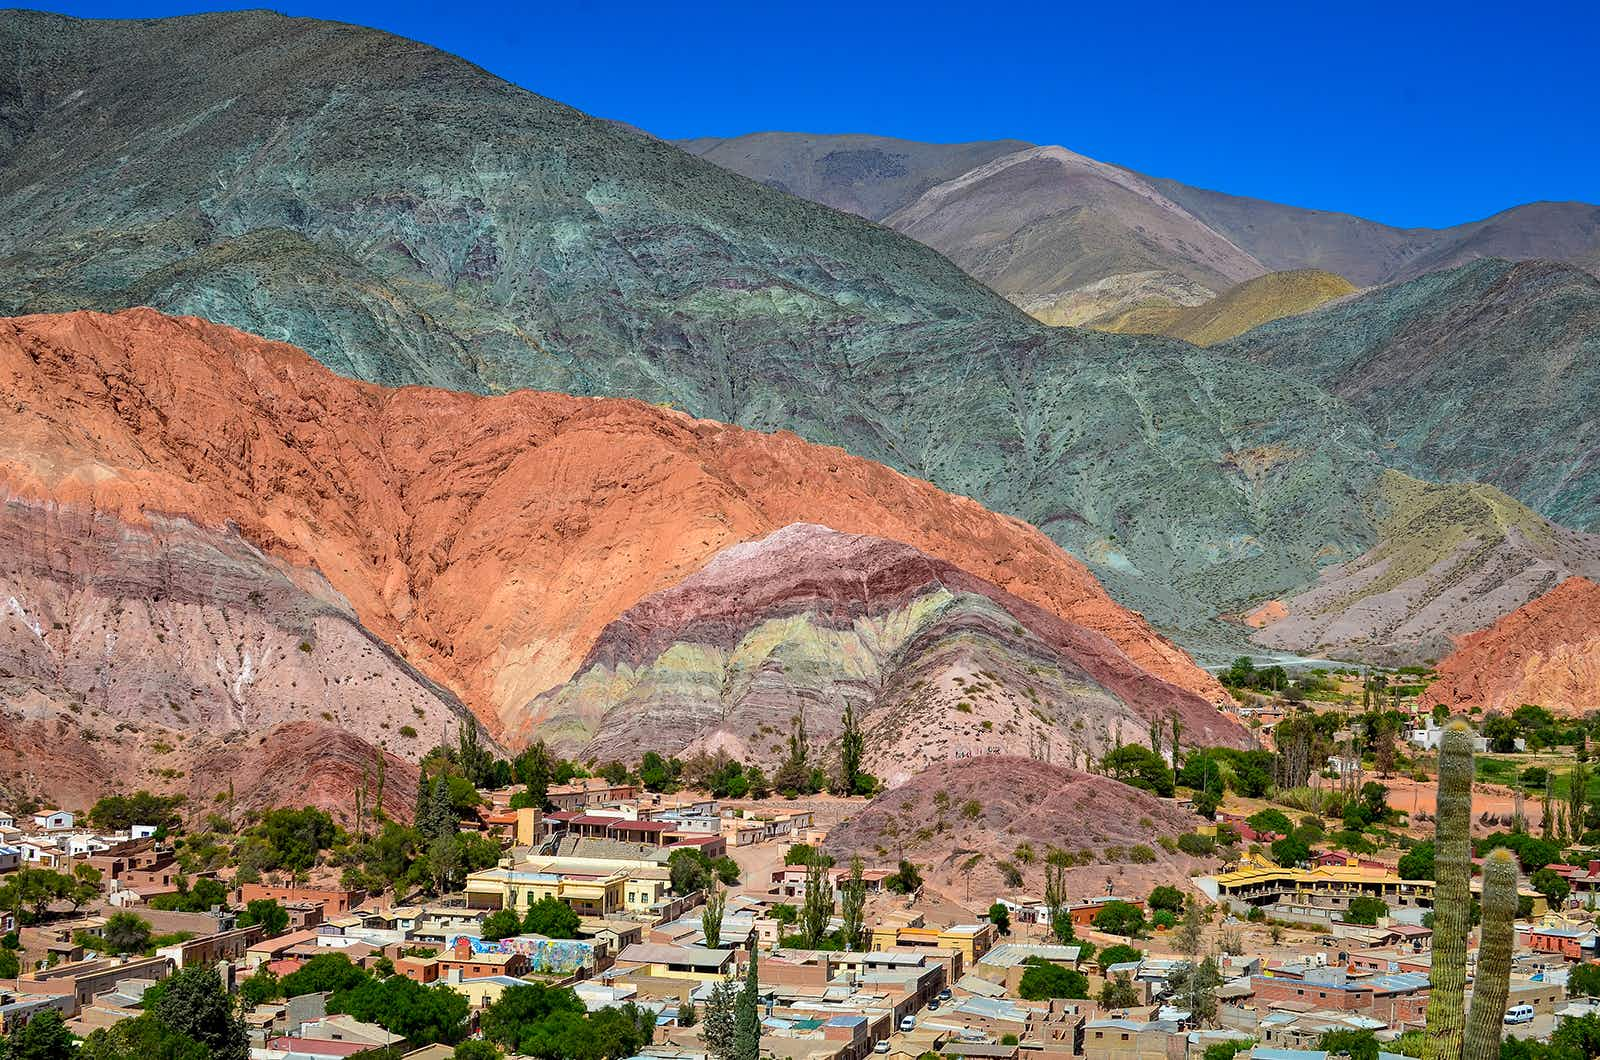 kjhdf was inspired by the painted hills of Jujuy © Marcos Radicella / Getty Images